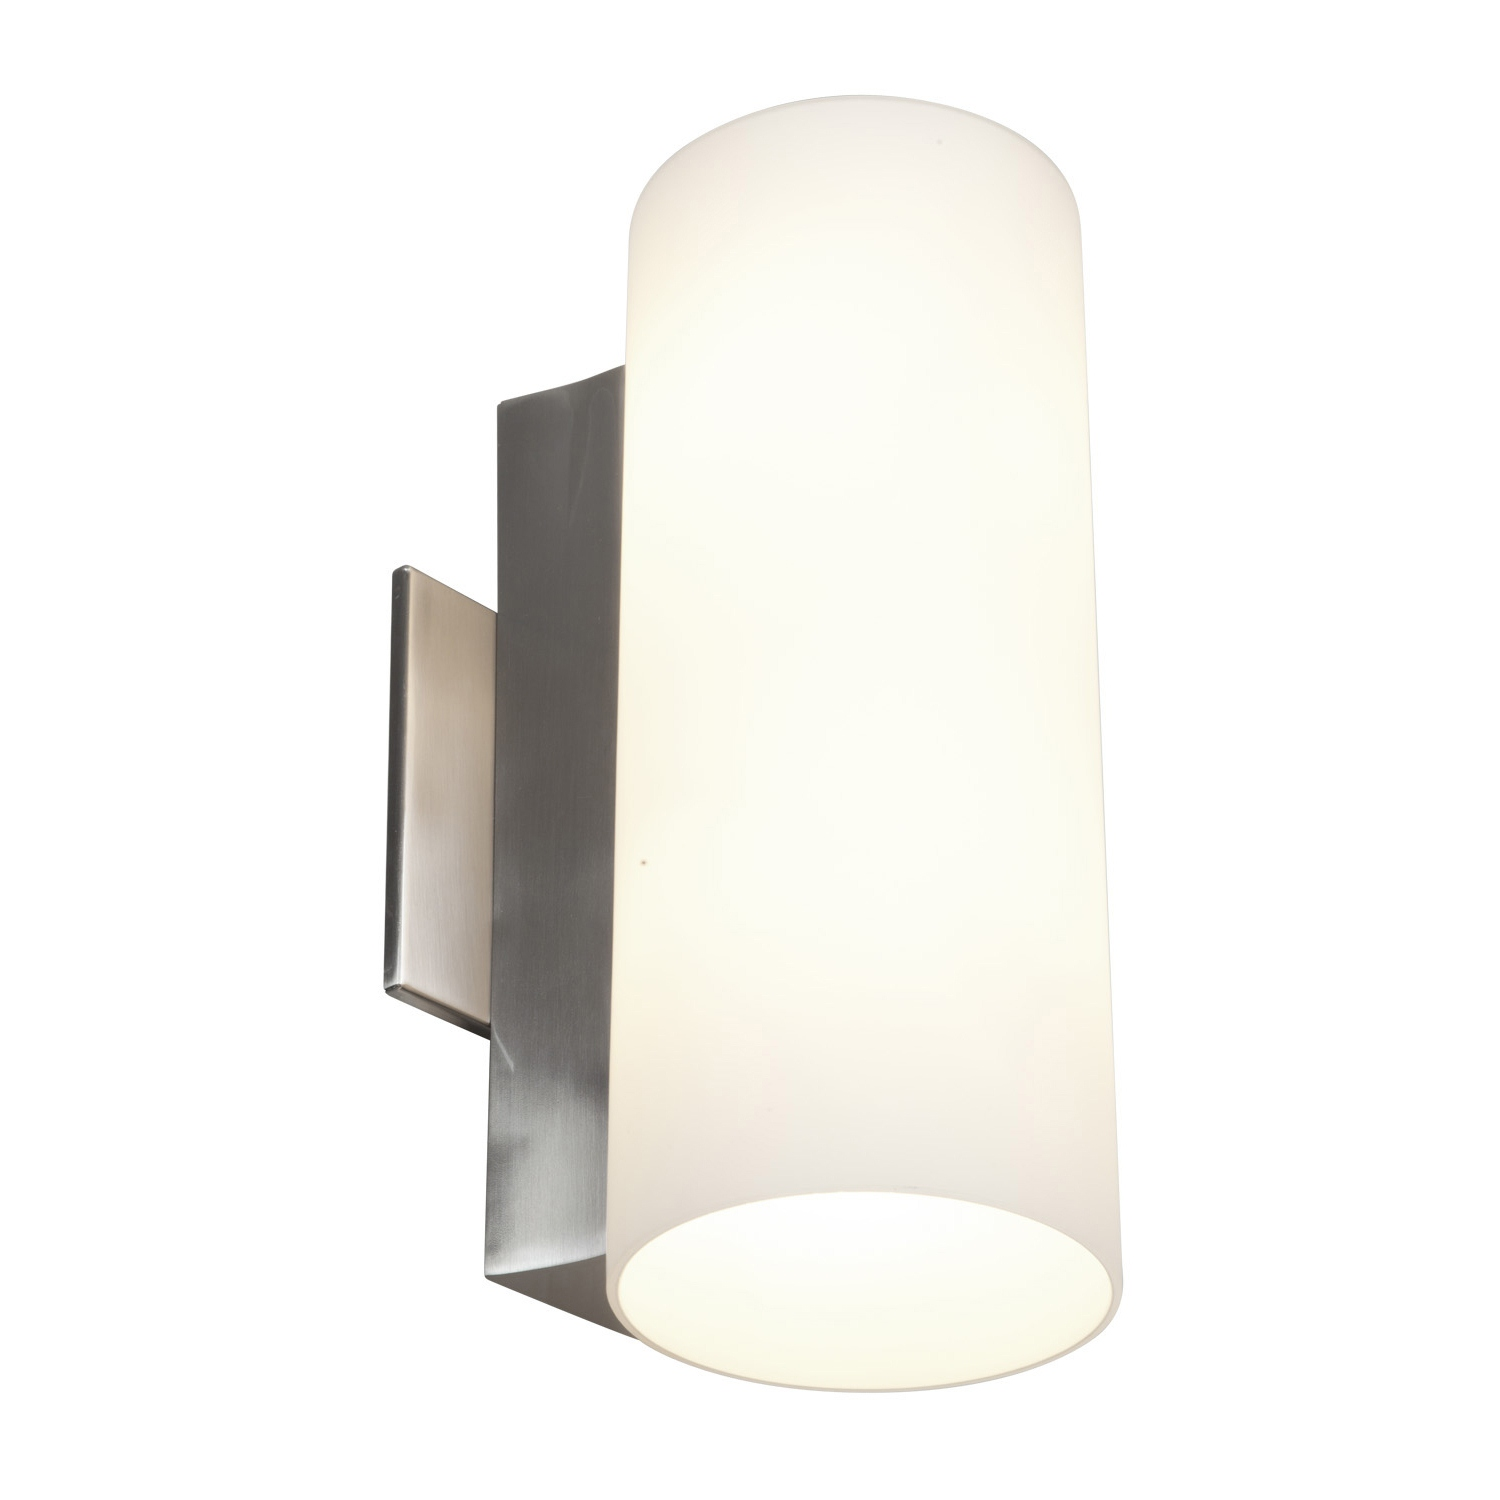 Wall Sconces : Add Beauty to Your Home with 2 light wall sconces Warisan Lighting